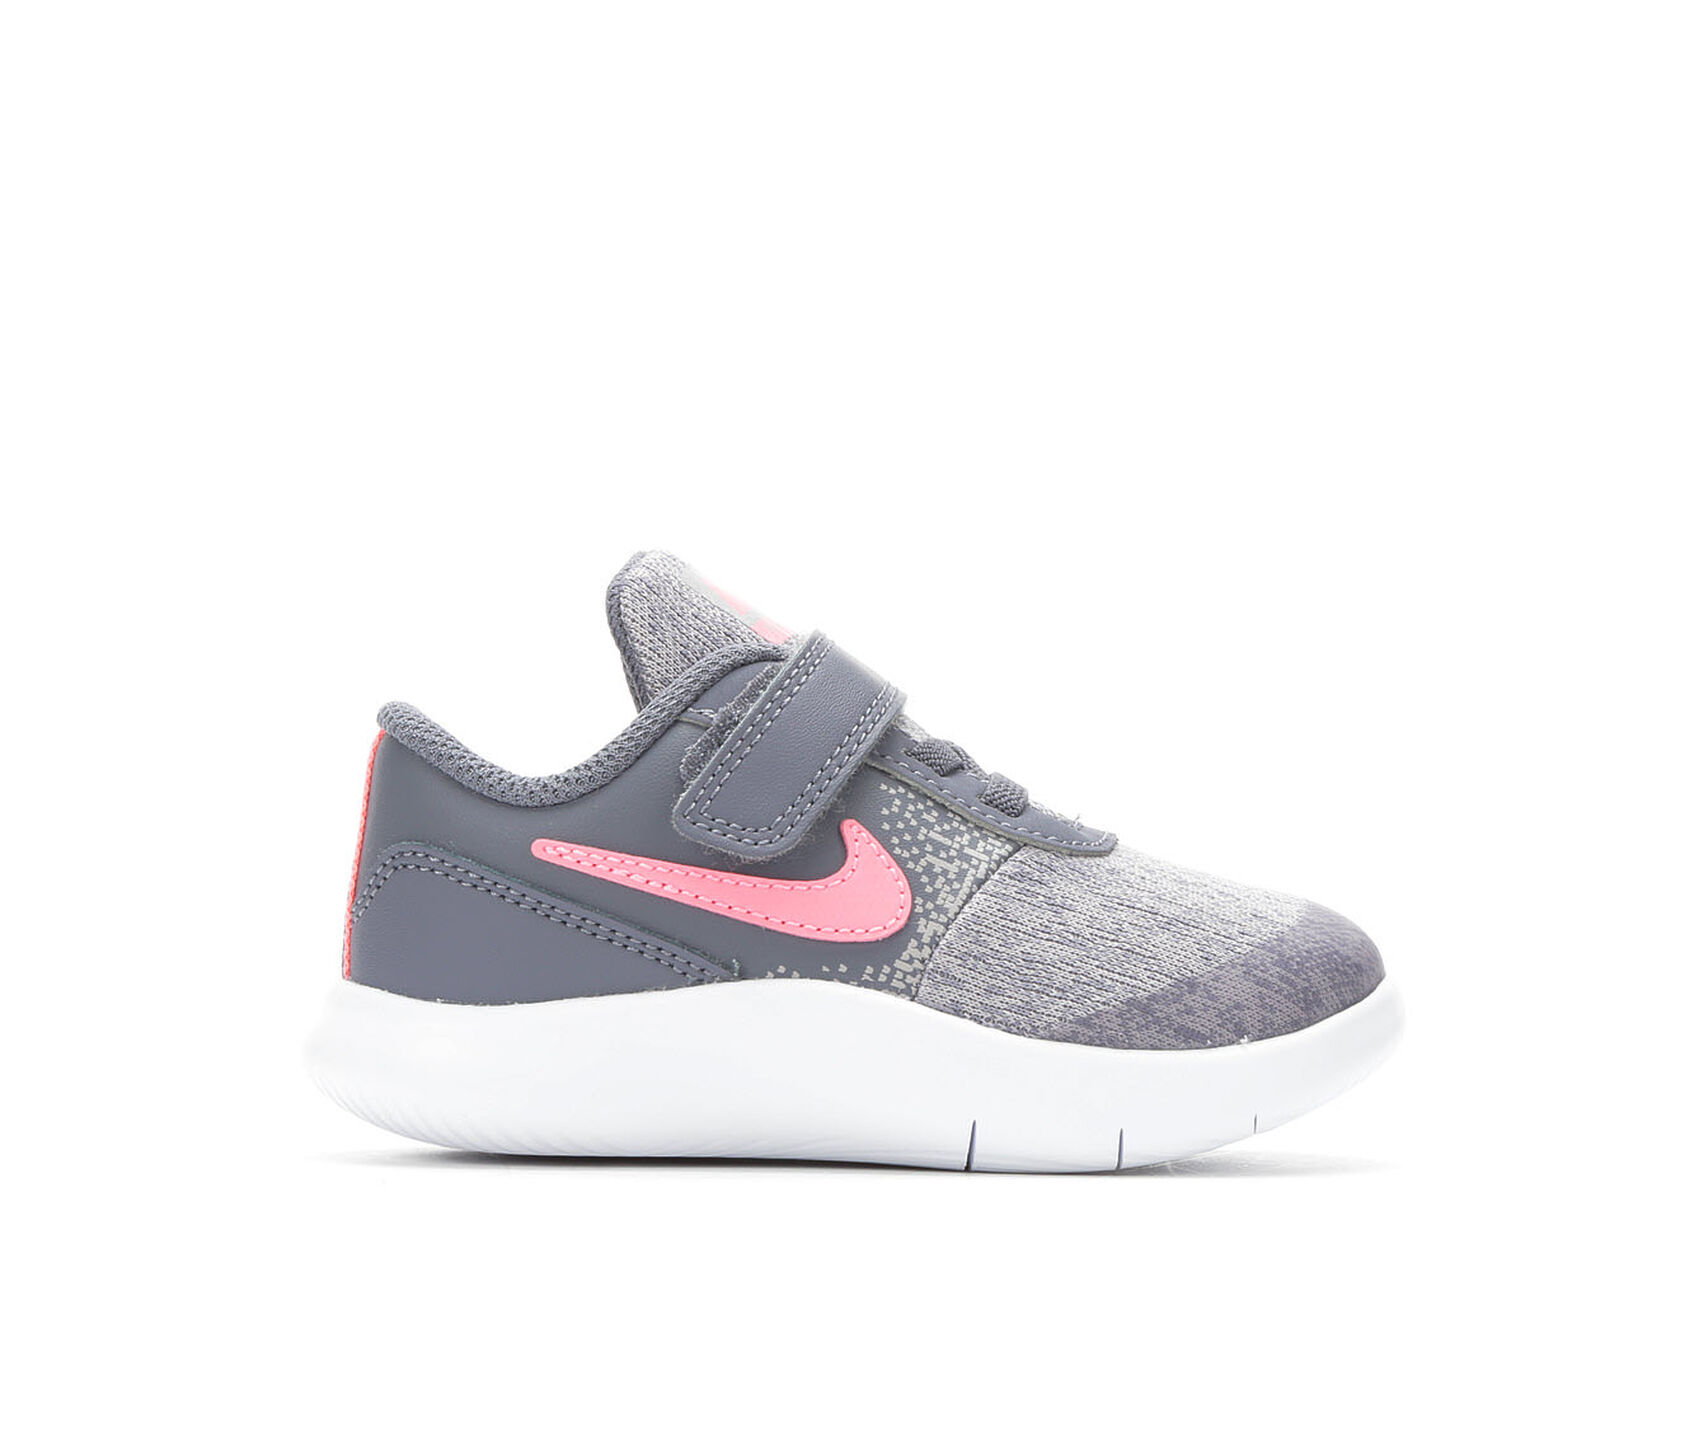 88a68282f0 Girls' Nike Infant Flex Contact Velcro Running Shoes | Shoe Carnival